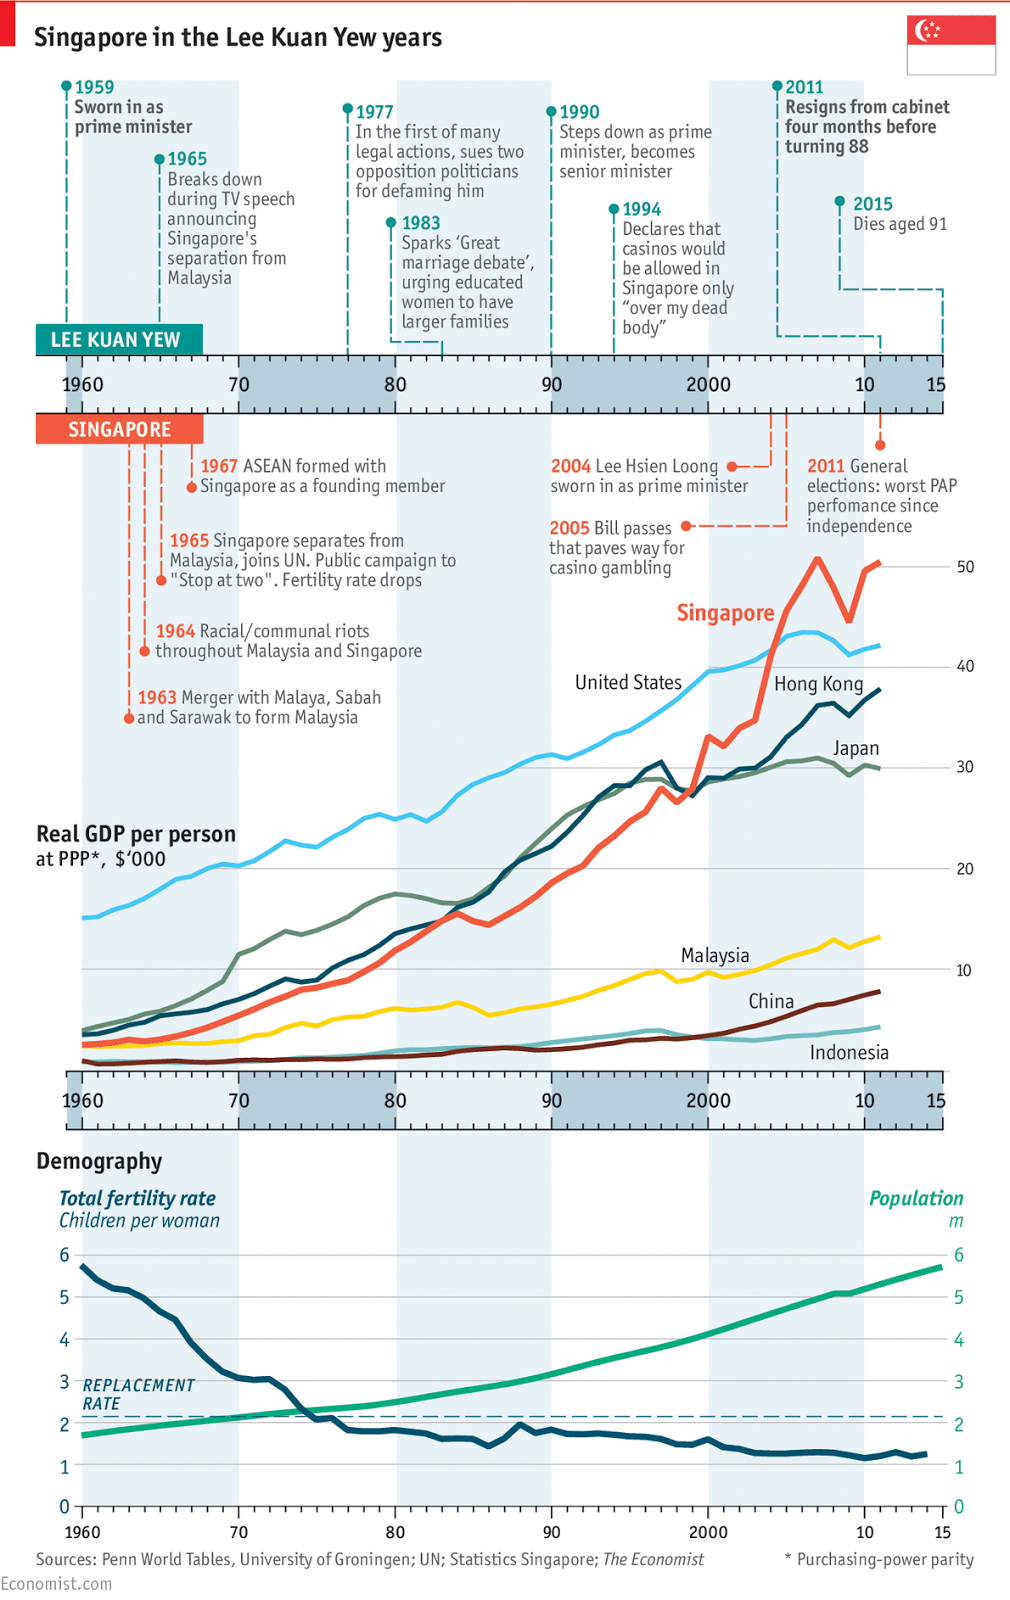 http://www.economist.com/blogs/graphicdetail/2015/03/lee-kuan-yews-singapore